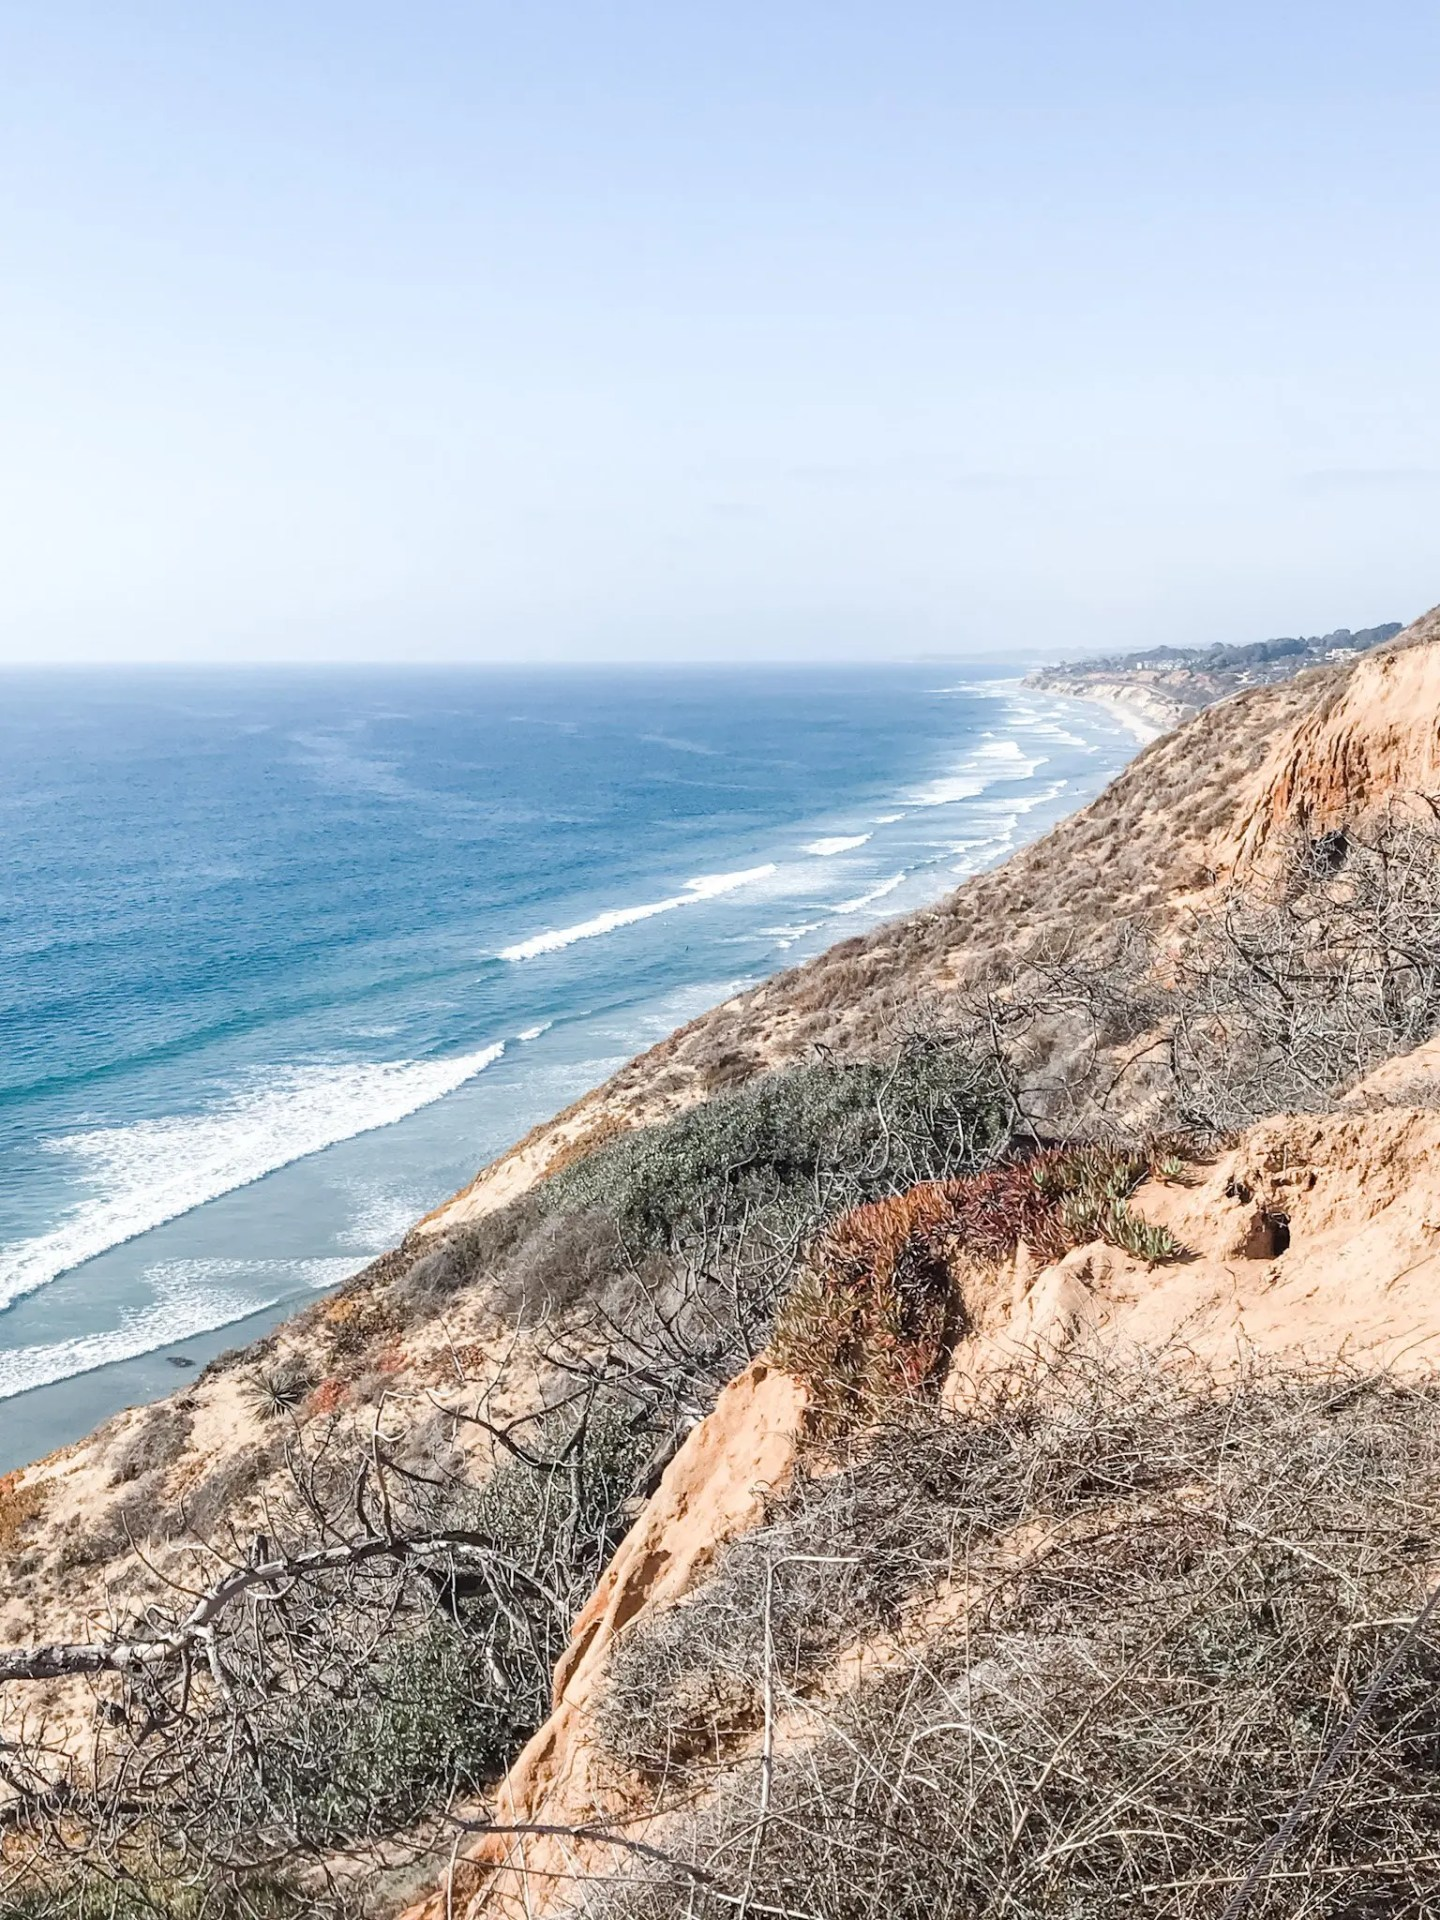 California Road Trip to San Diego. View from a hike within the Torrey Pines State Reserve, San Diego.